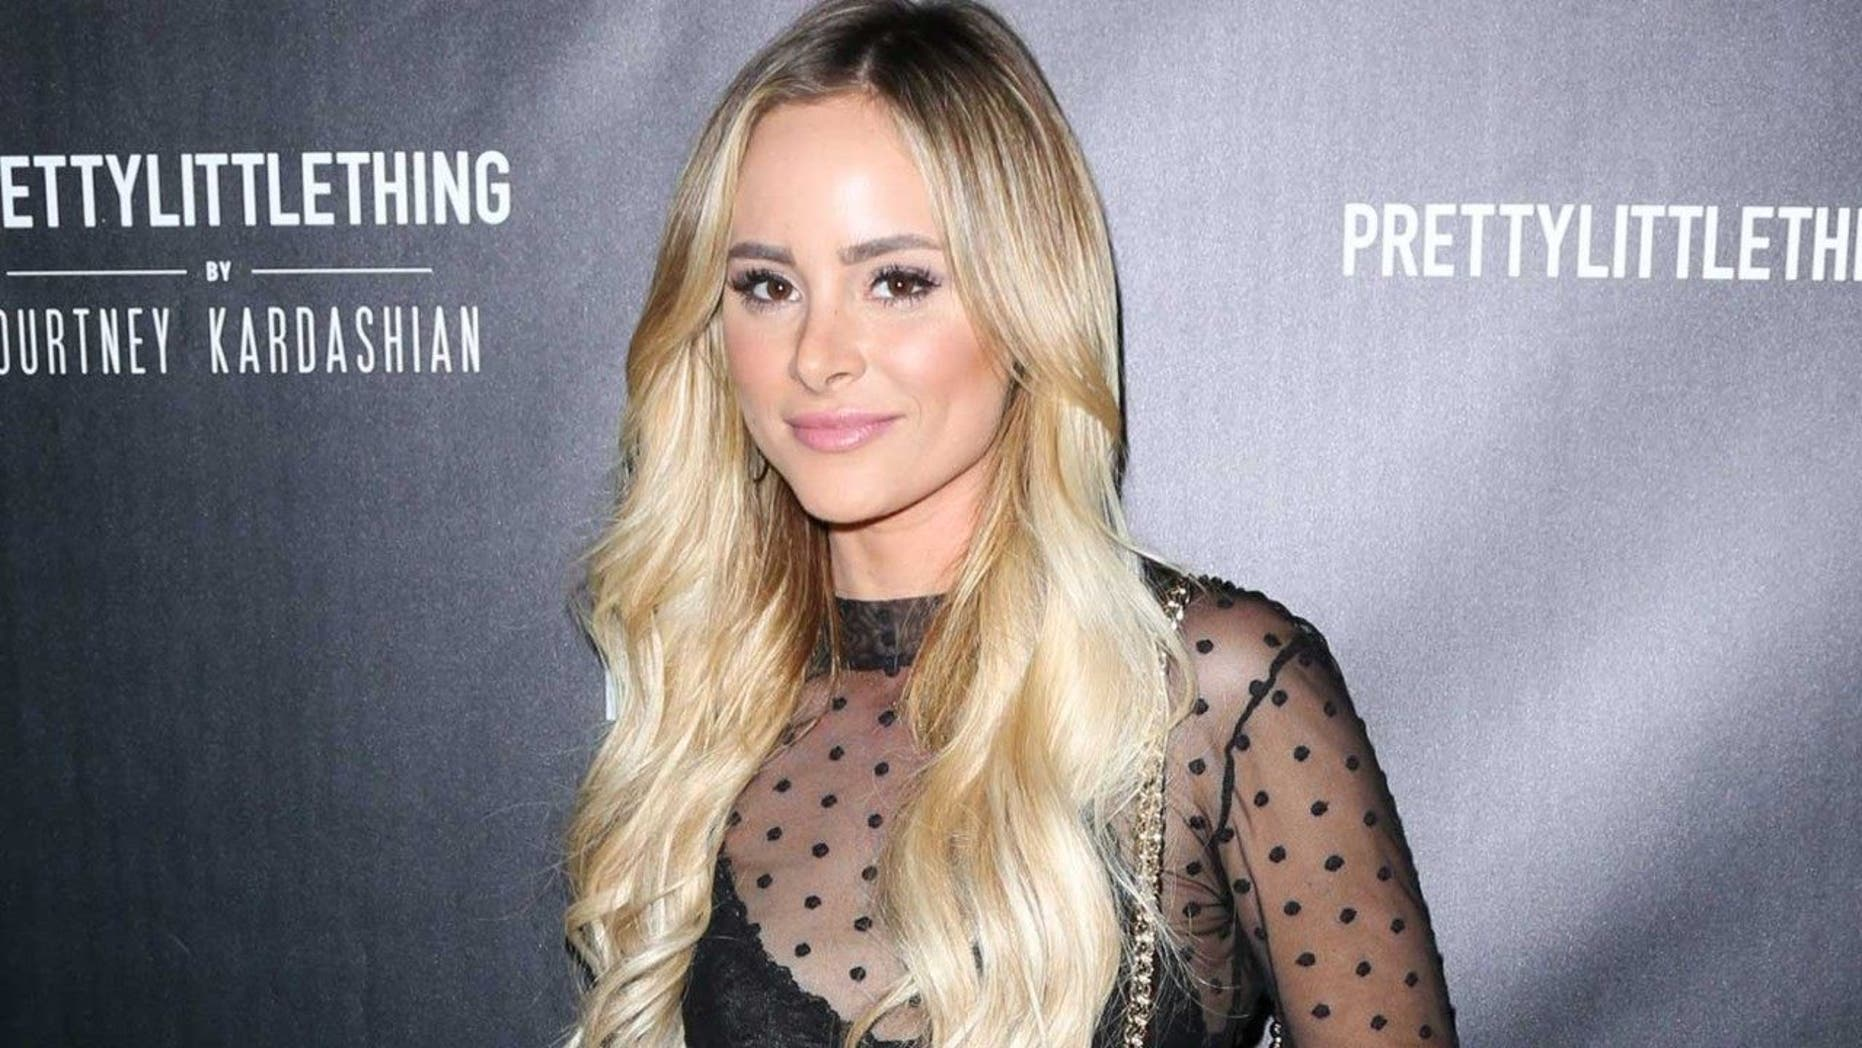 """Bachelor"" alum Amanda Stanton's domestic violence case, stemming from her September arrest, has been dismissed, according to Entertainment Tonight."